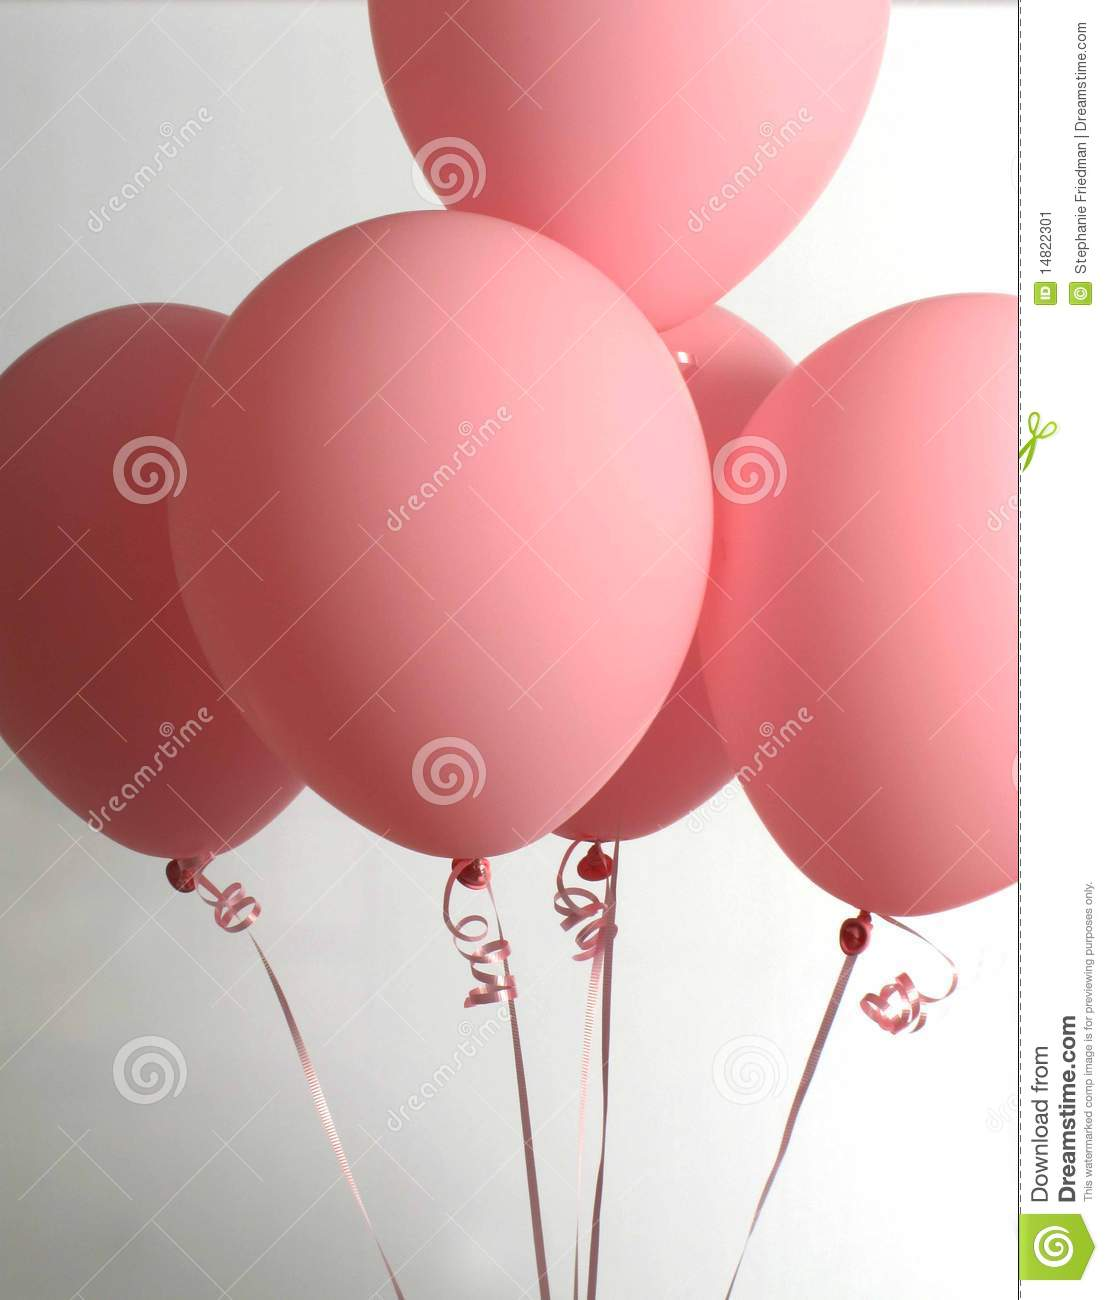 Bunch Of Pink Balloons Stock Image - Image: 14822301